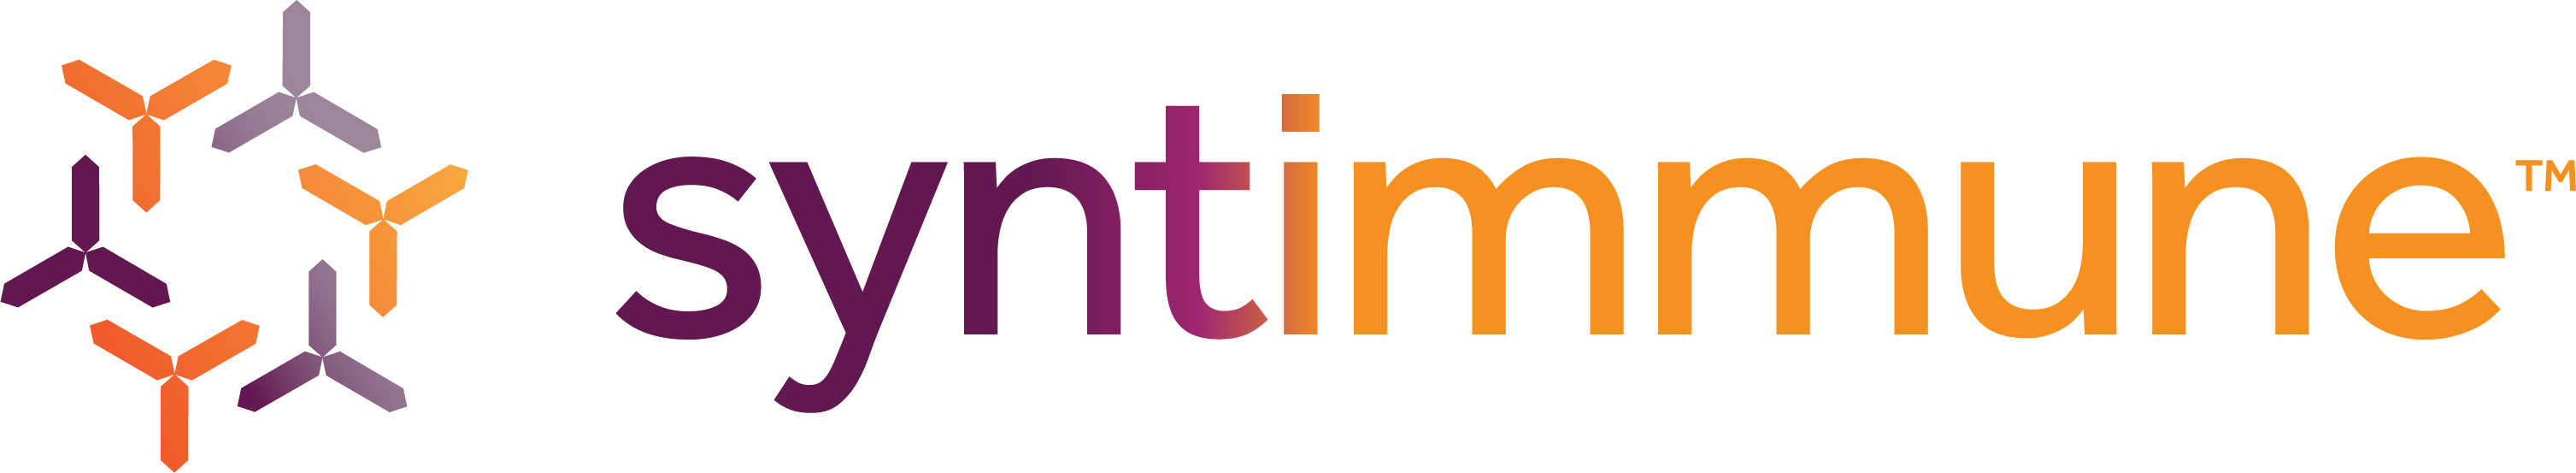 Syntimmune Logo